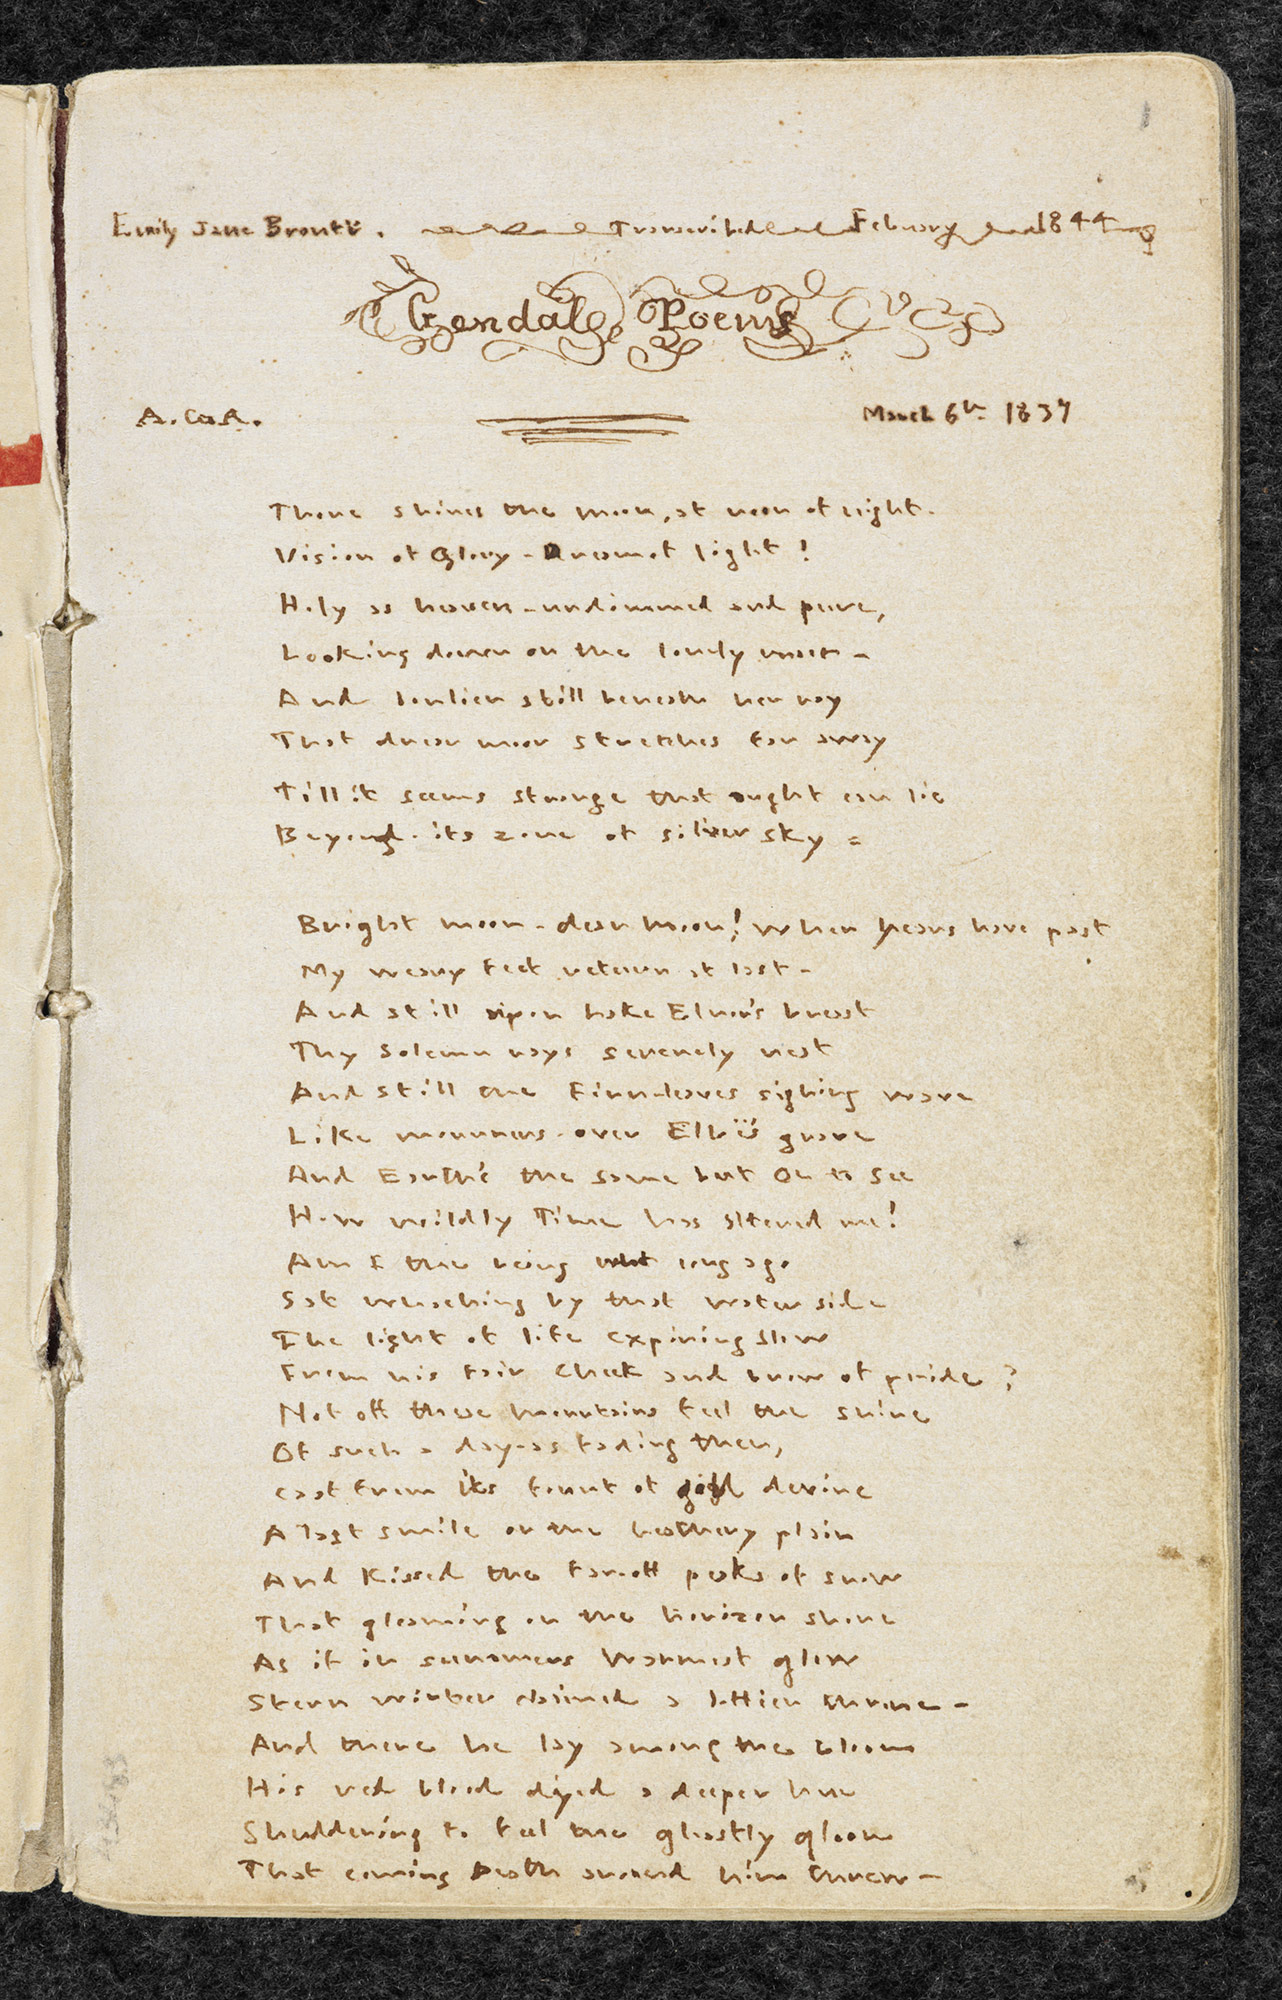 Manuscript of Emily Bronte's 'Gondal Poetry' f.1r